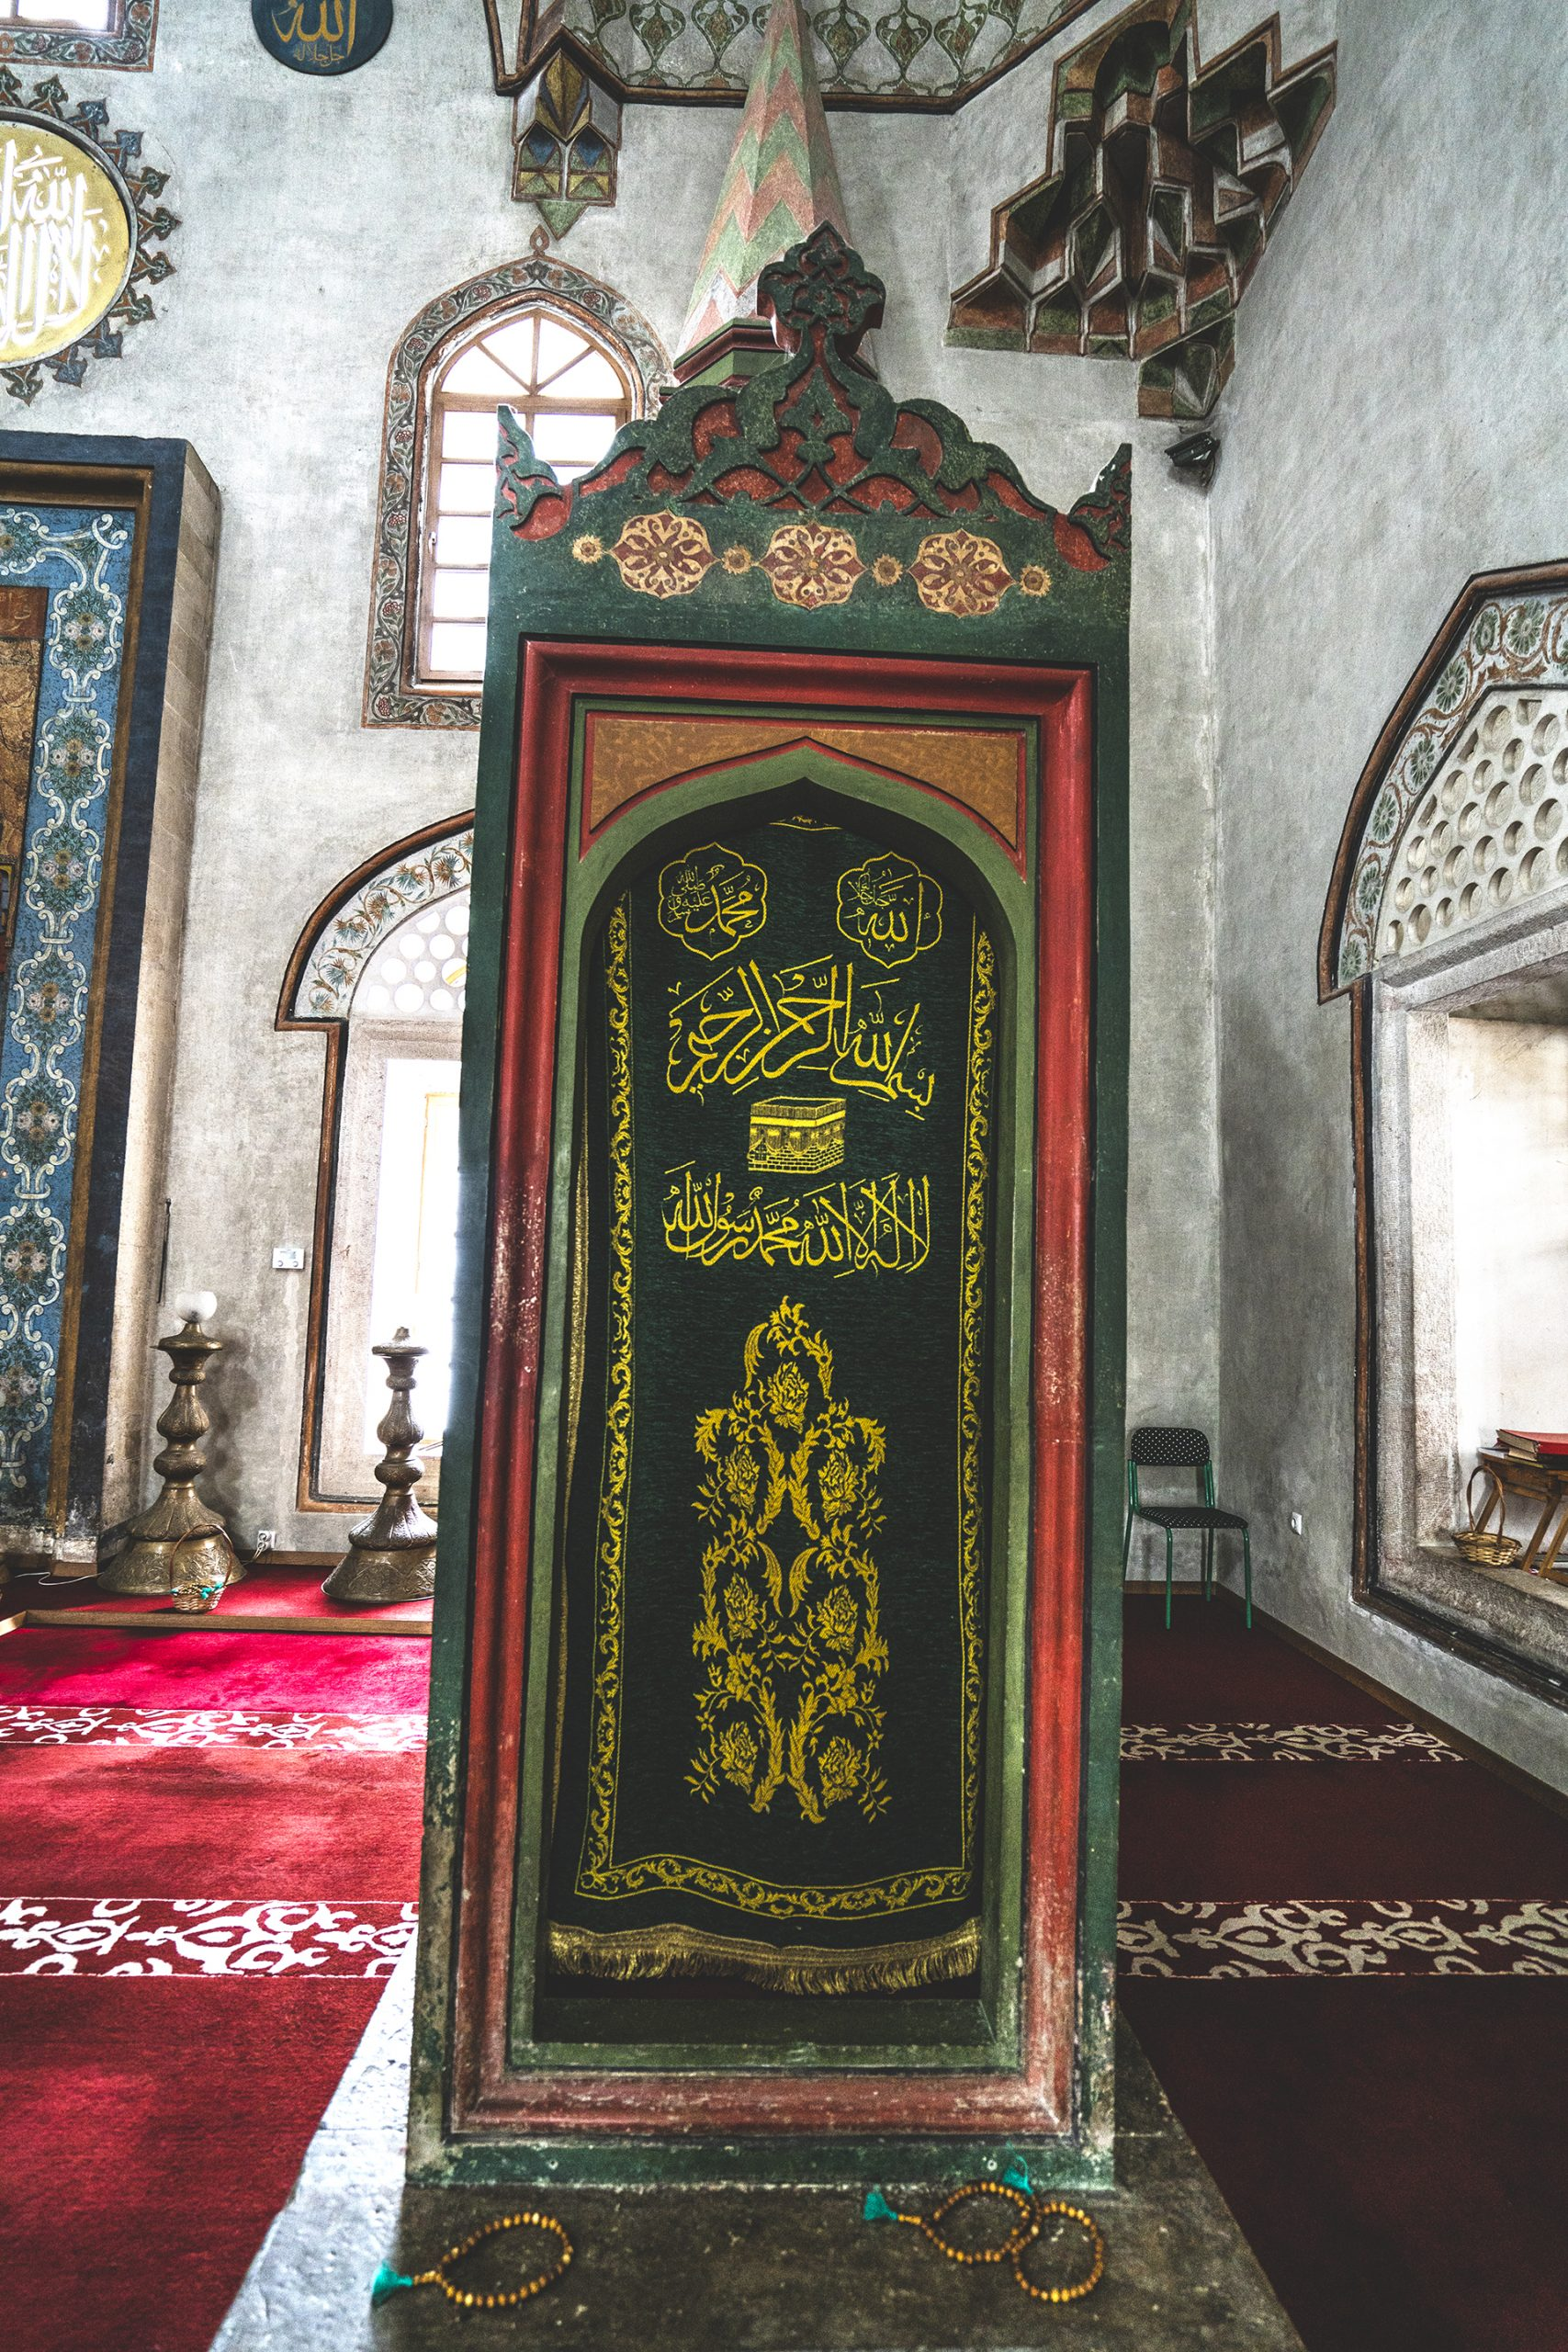 Entrance to the minbar of the Emperor's Mosque, Sarajevo